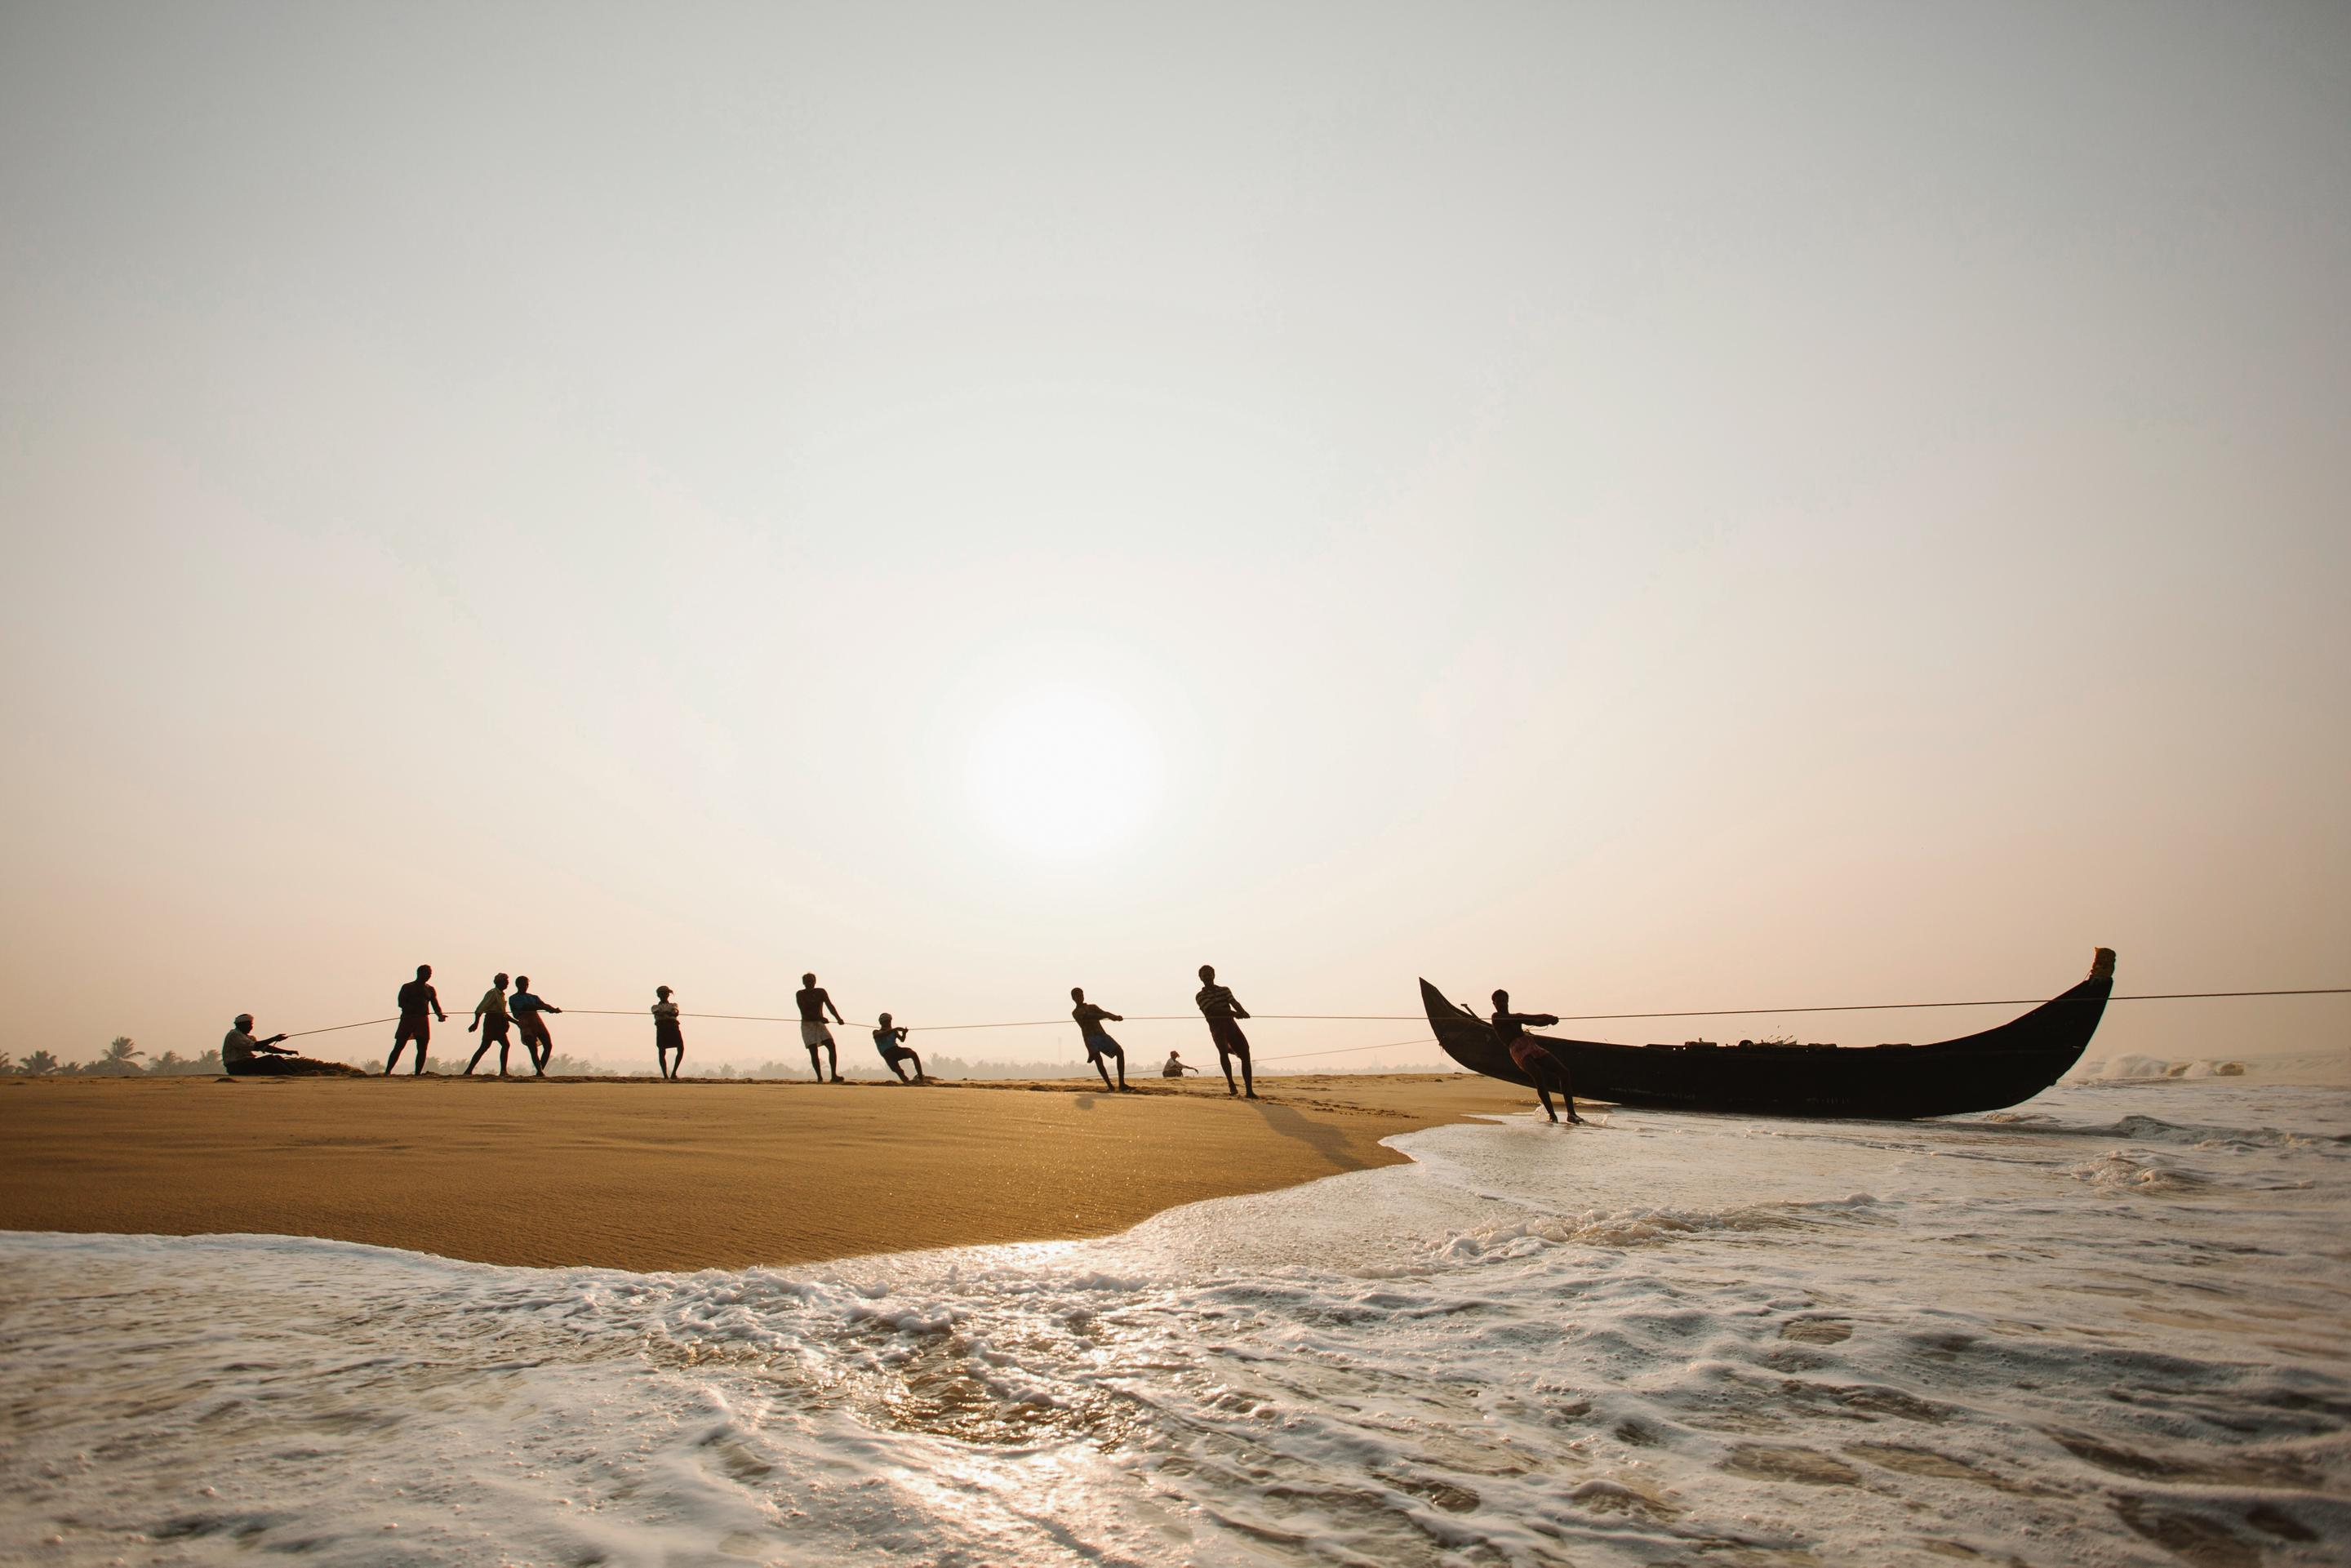 People pull long boat onto a beach at sunset